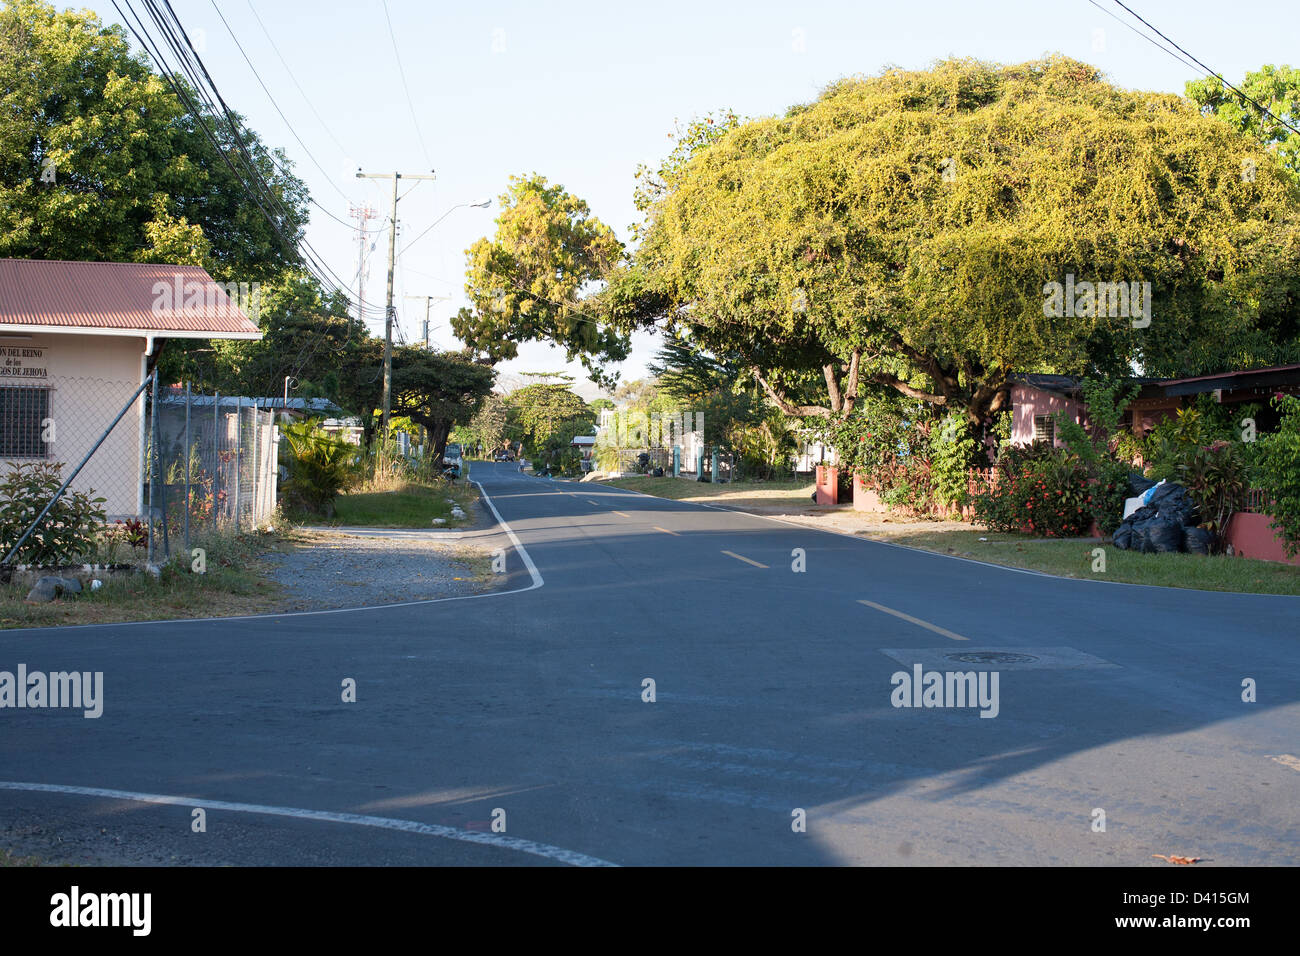 Residential road in Penonome, Panama. - Stock Image